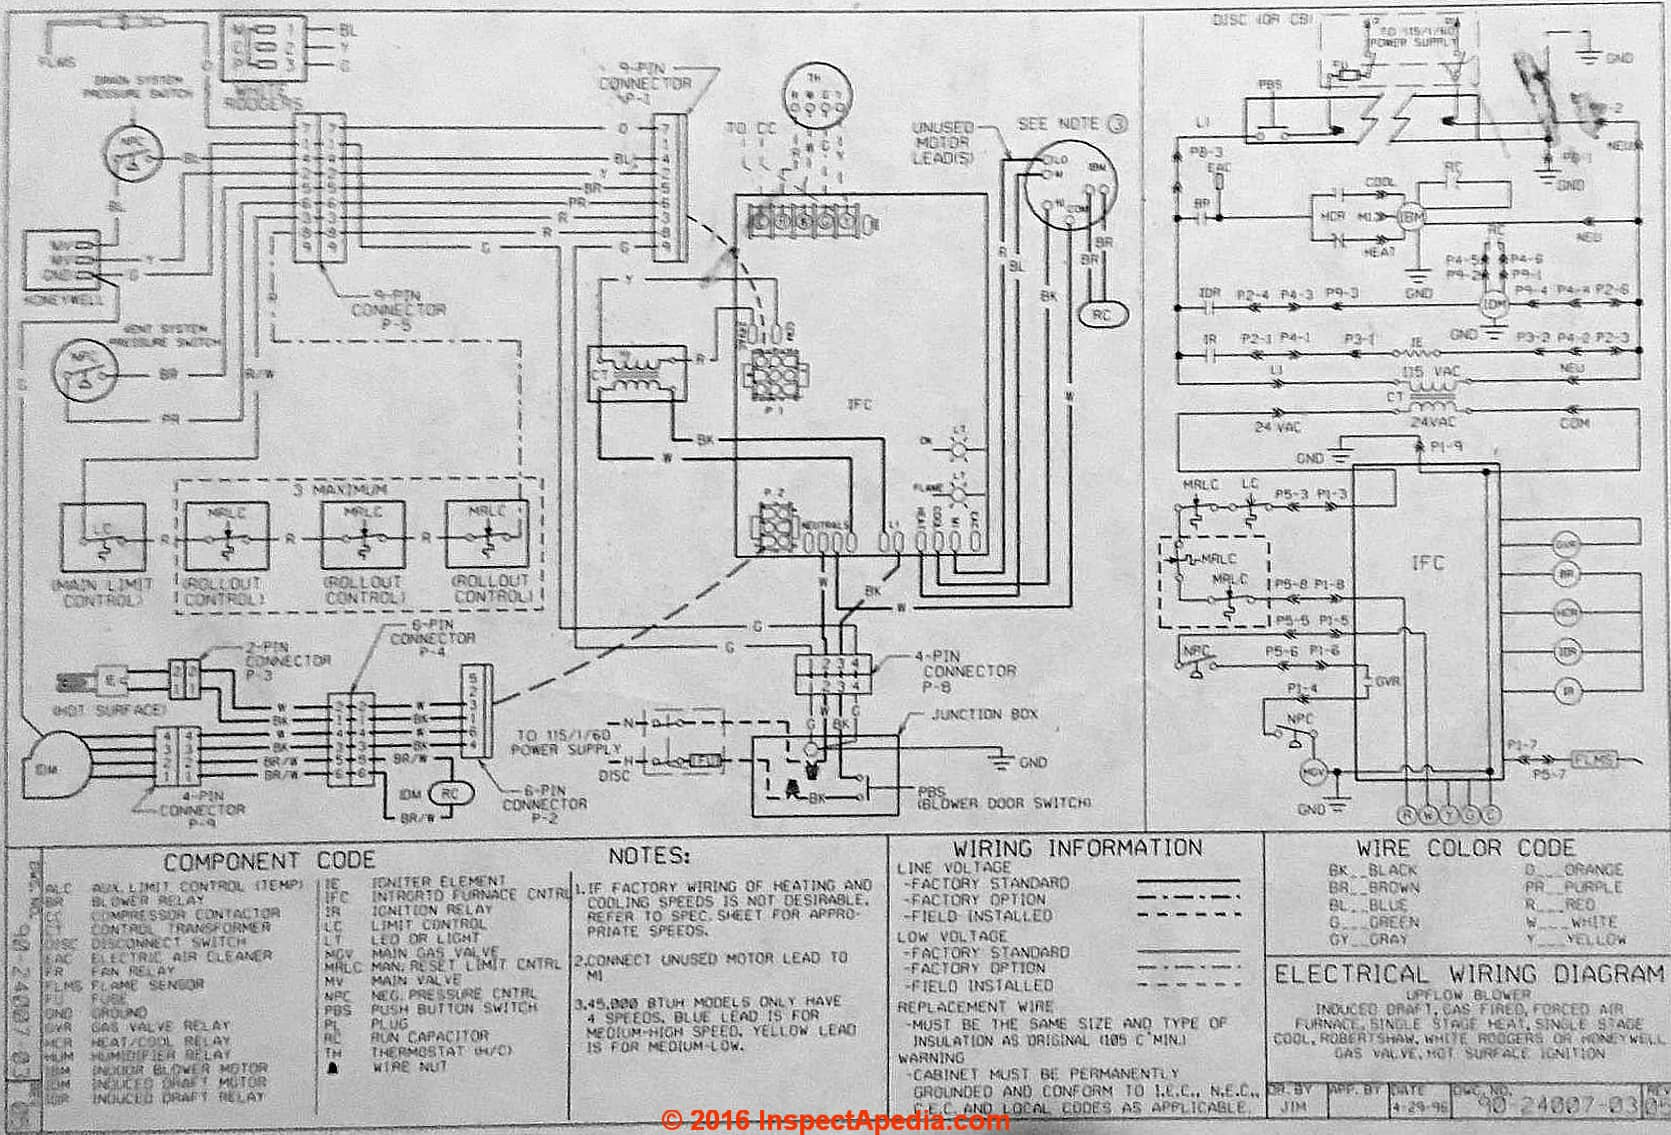 Old Rheem Wiring Diagrams Library Aquastat Diagram Ahu Typical At Inspectapediacom